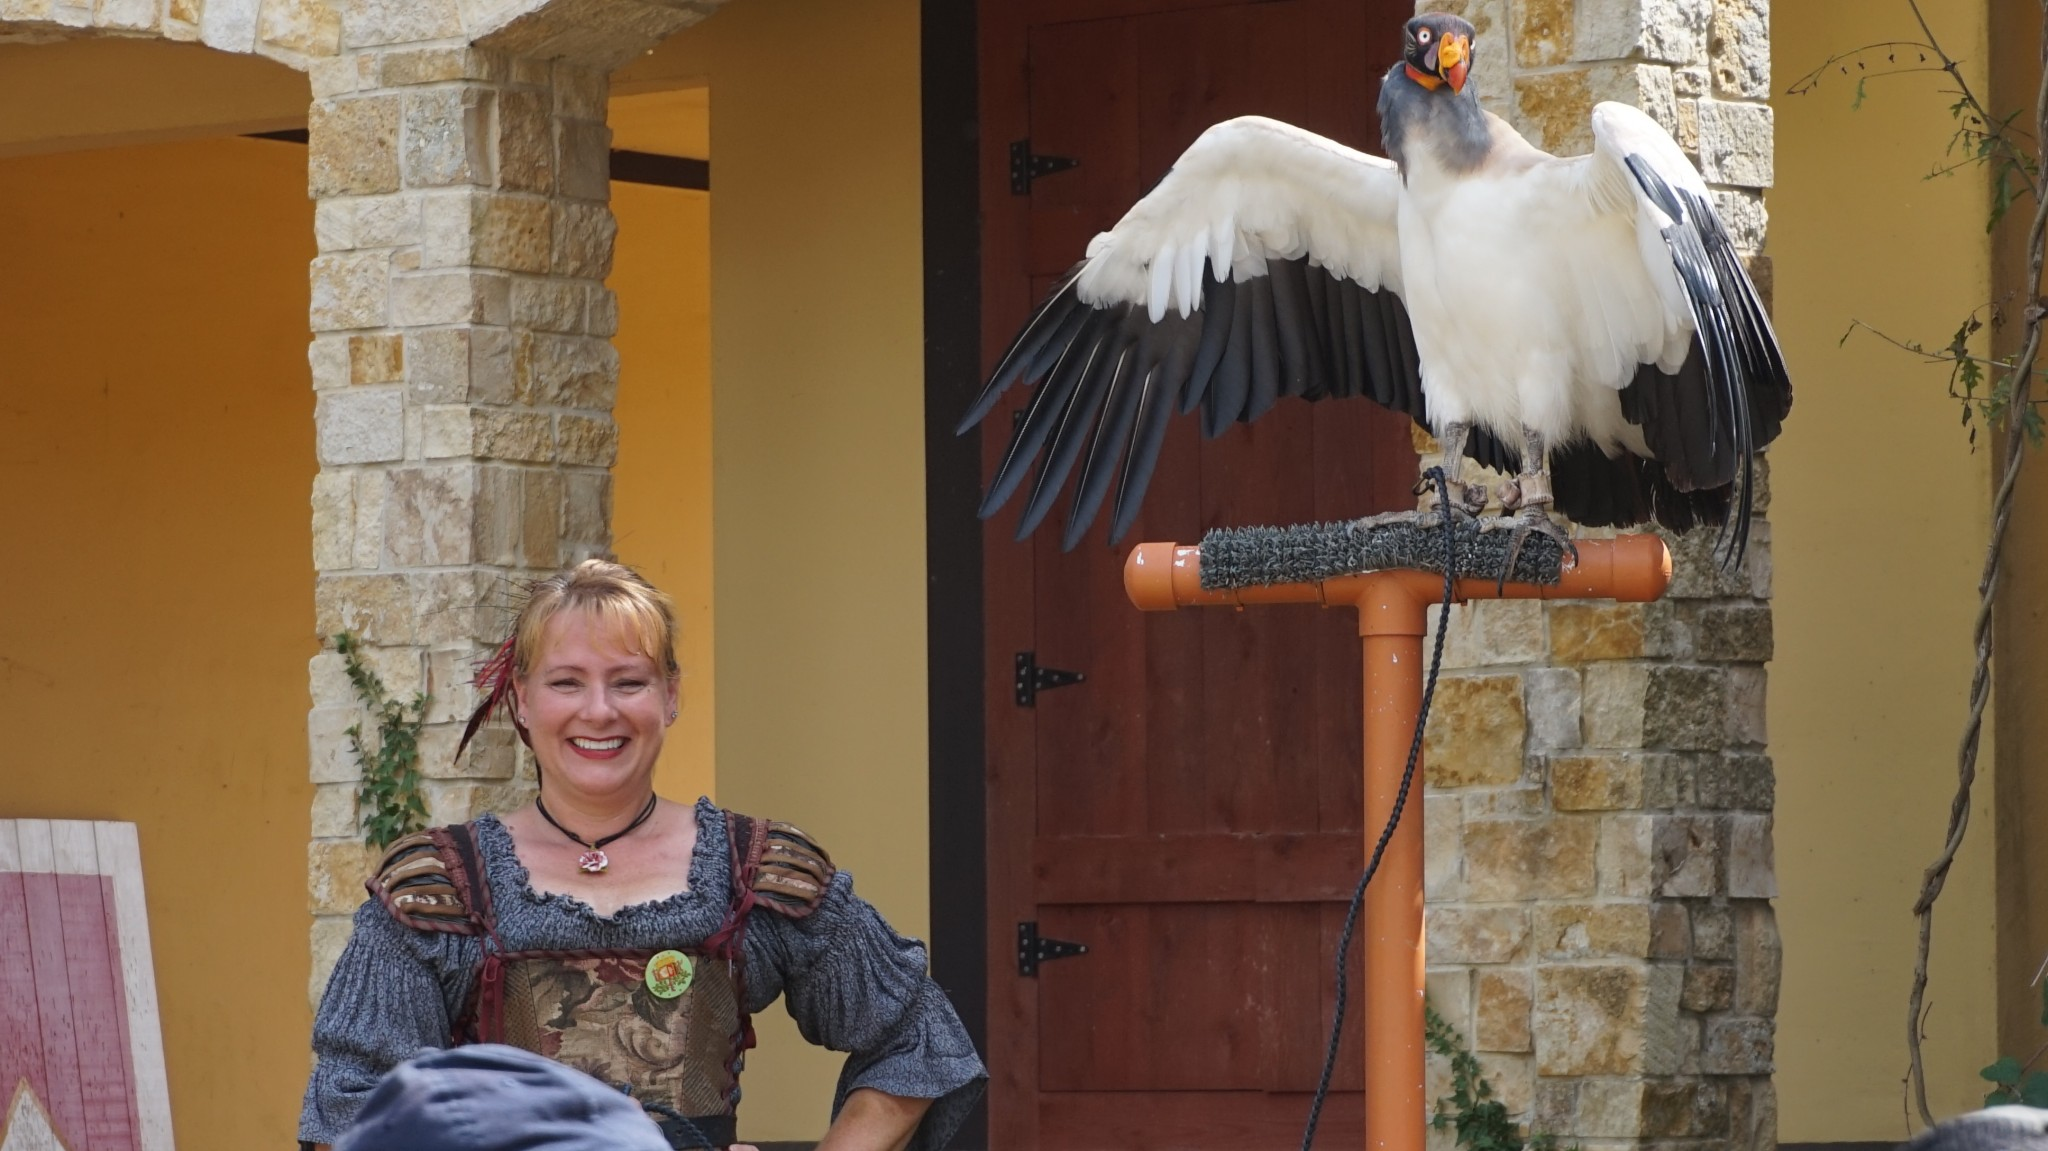 This Birds of Prey outdoor performance has many birds for visitors to behold